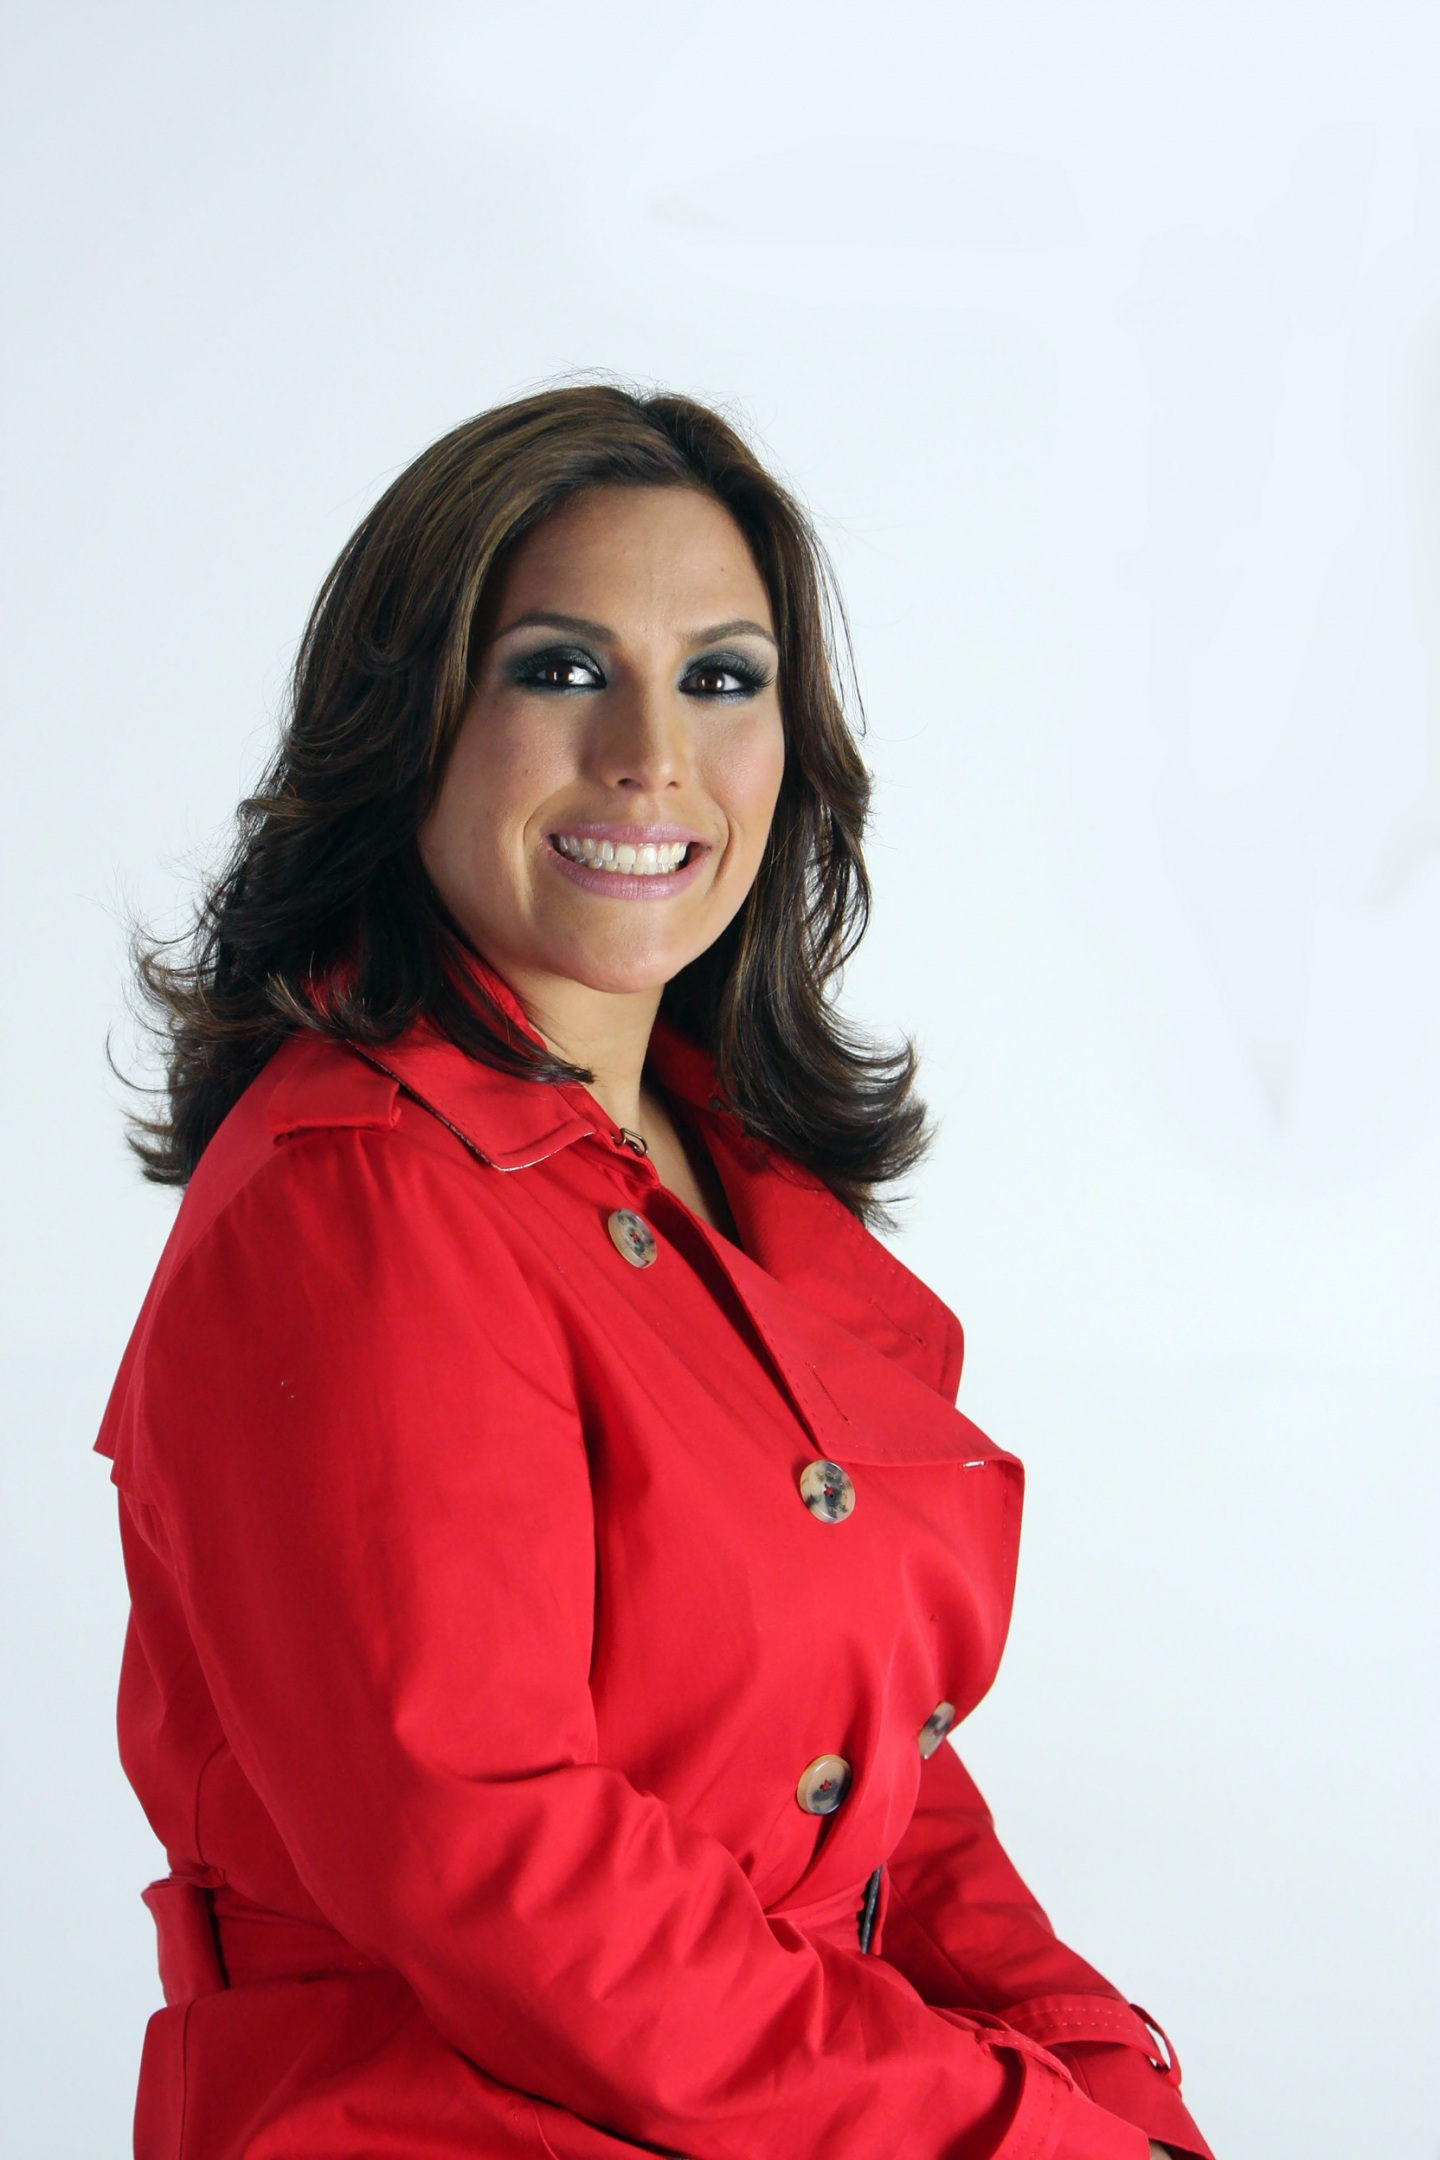 Angelica Vale naked (65 pictures) Cleavage, YouTube, cameltoe